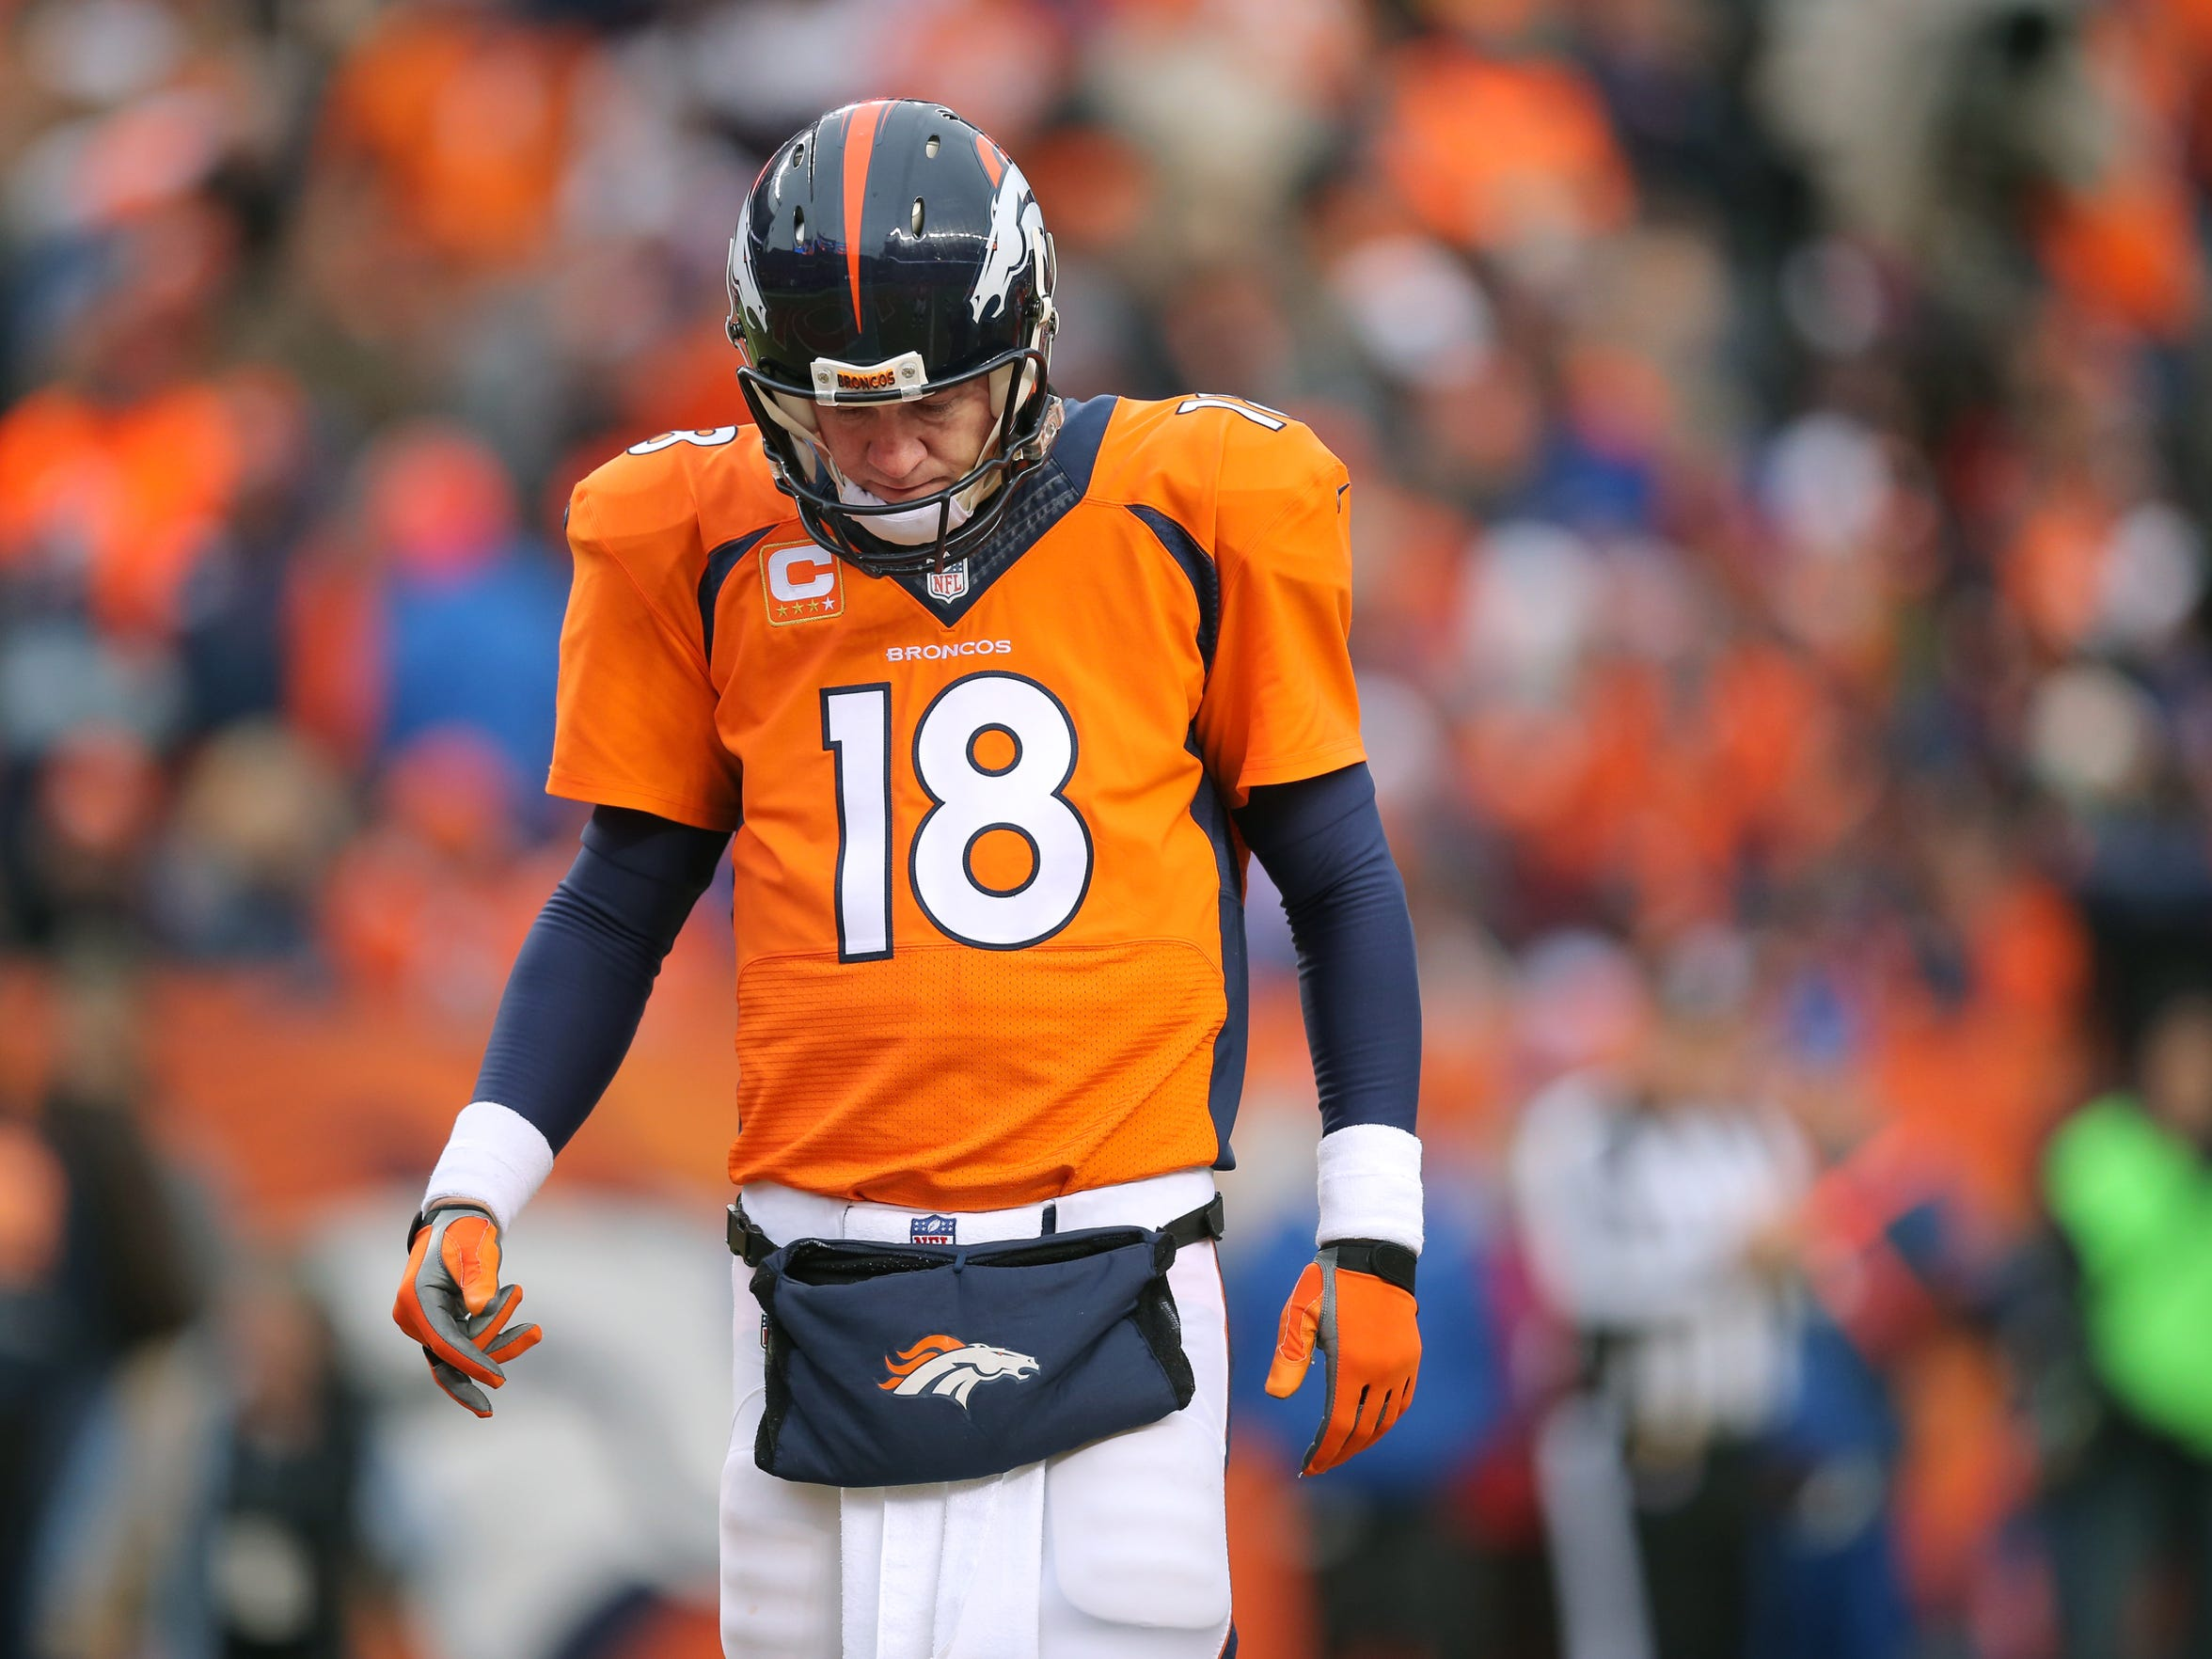 Manning arrives in Indianapolis this week seeking two NFL records -- most passing yards by a quarterback and most wins.